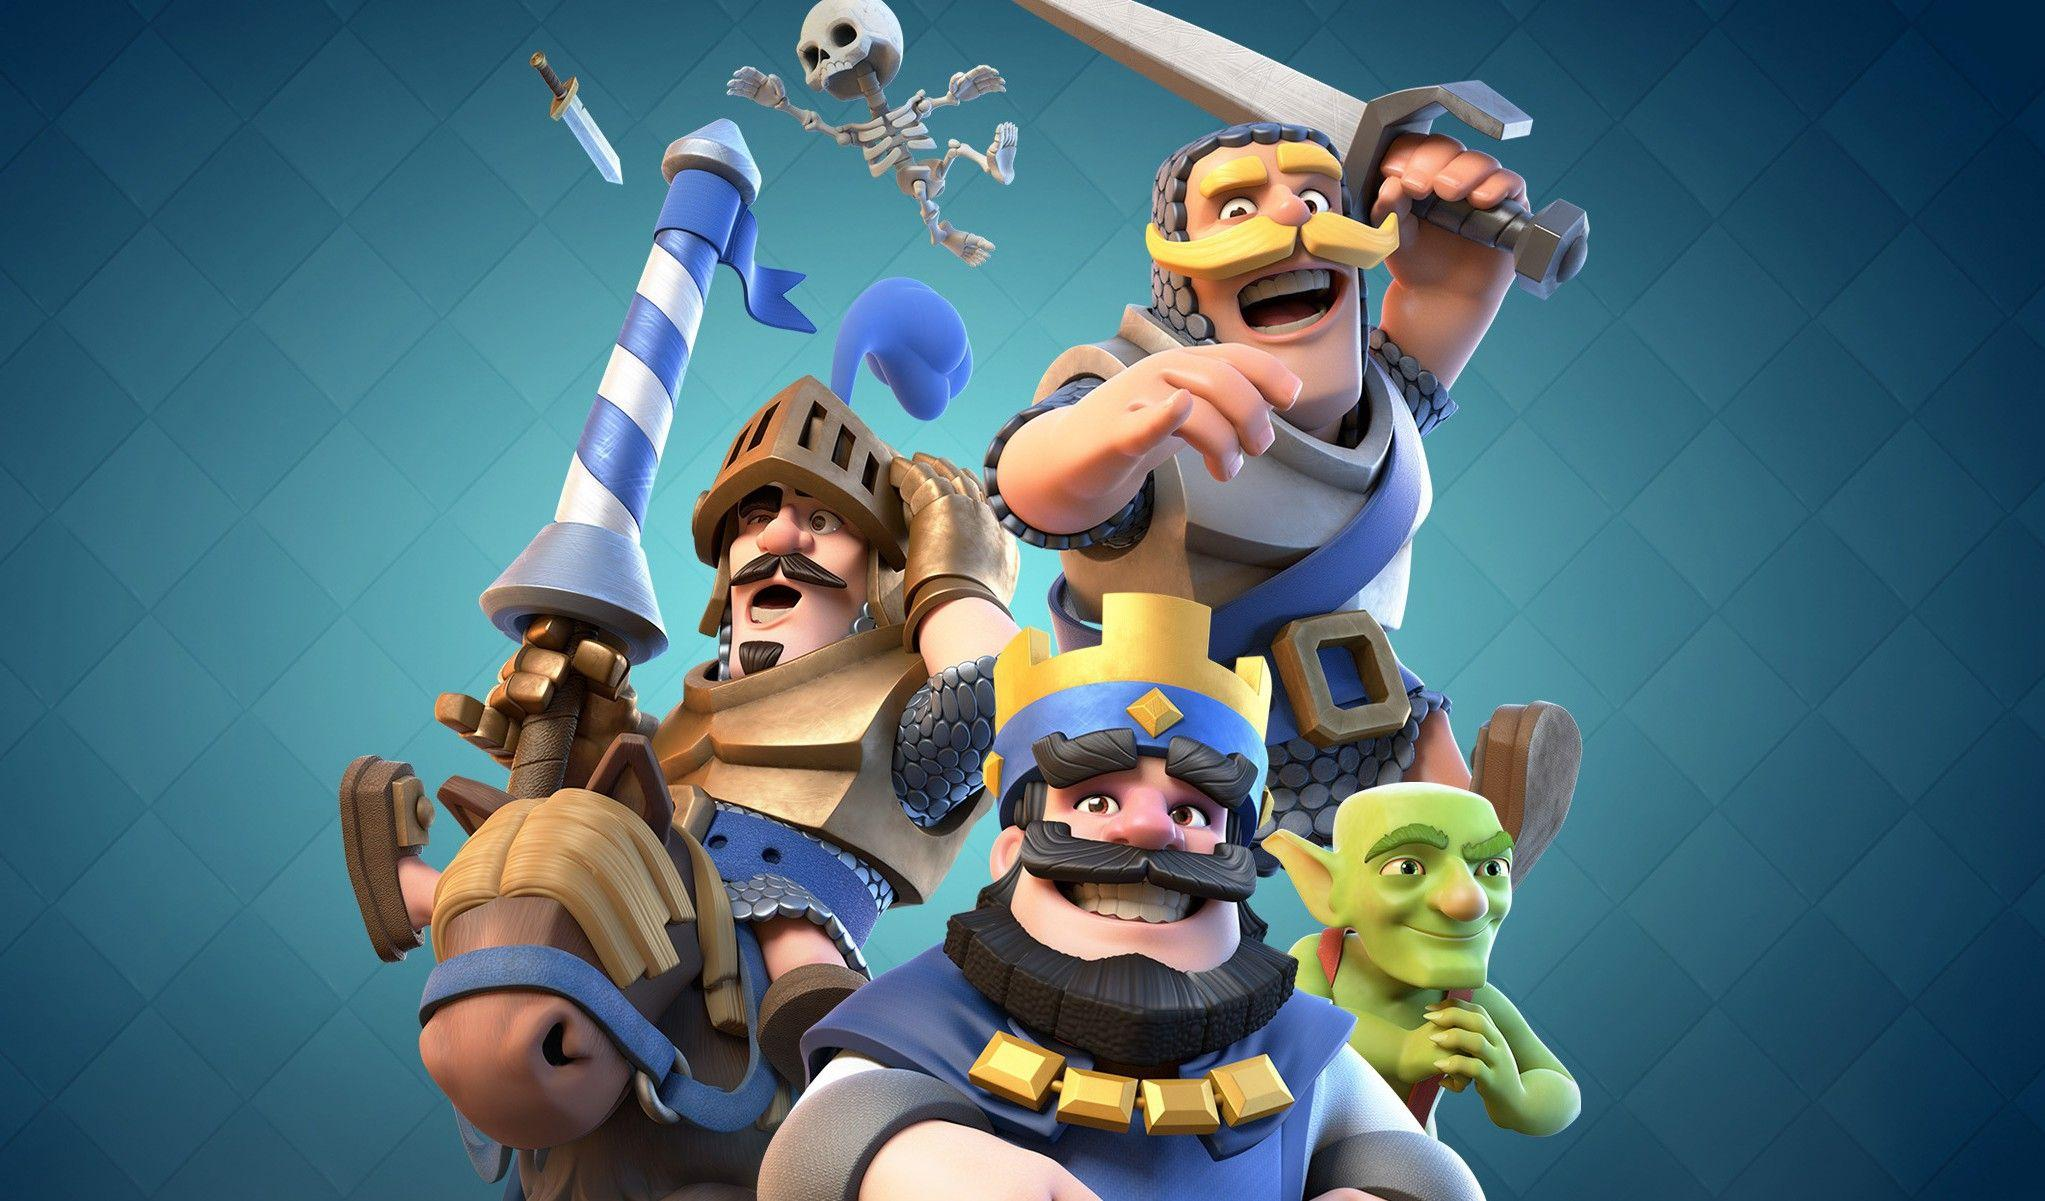 Mobile Game Clash Royale HD Wallpapers - Desktop Wallpapers